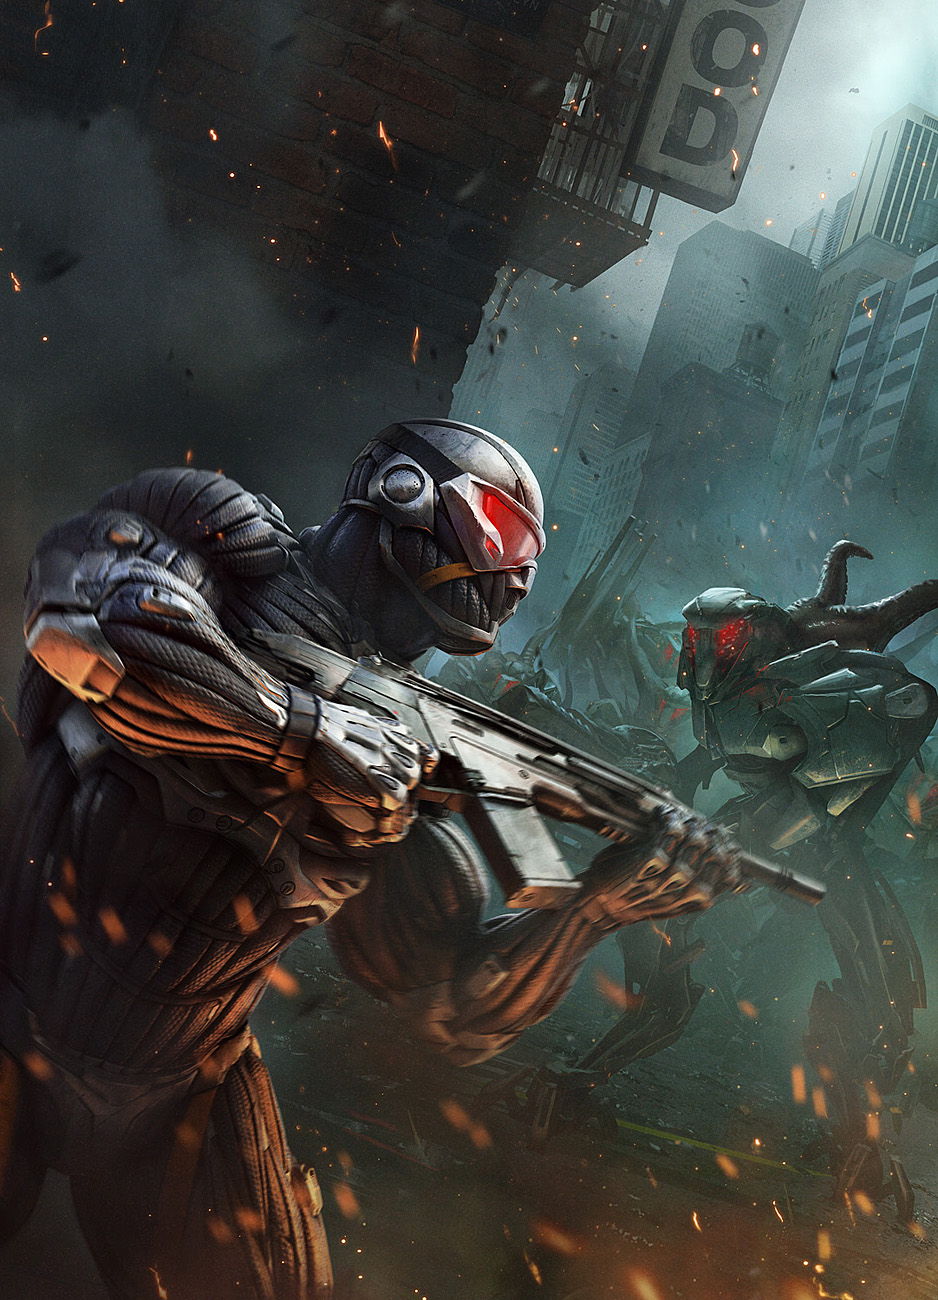 crysis 2 u0026 39 s concept art is a love letter to new york city